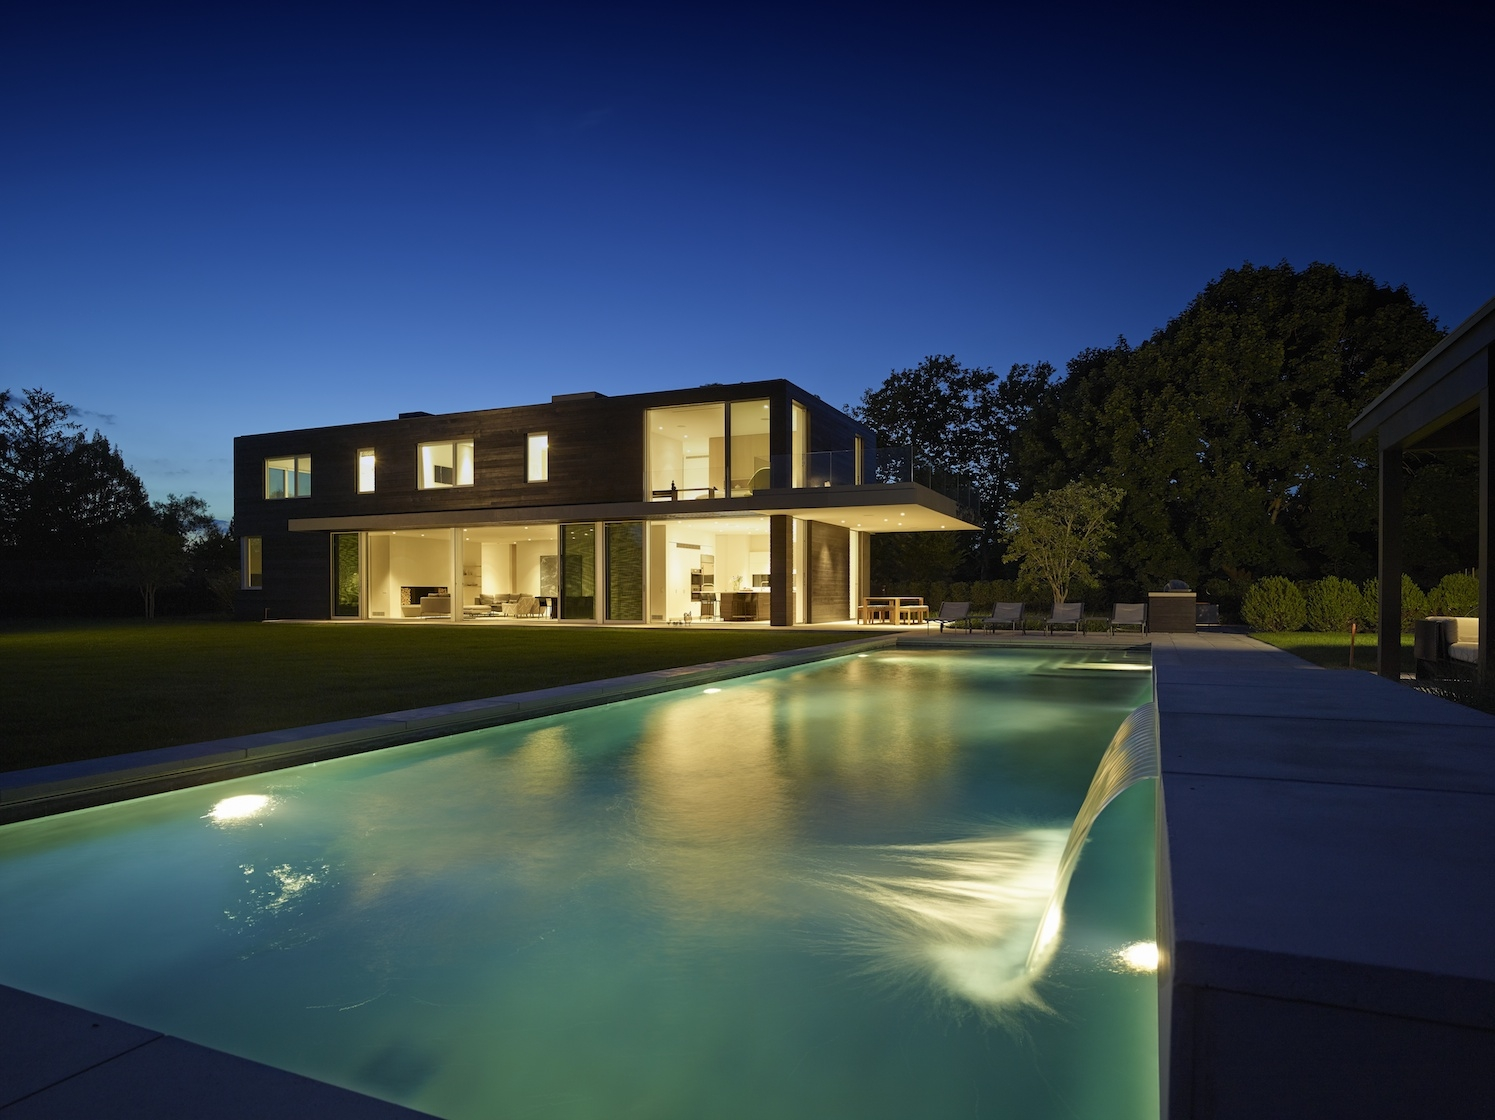 Sagaponack Modern House Pool at Dusk